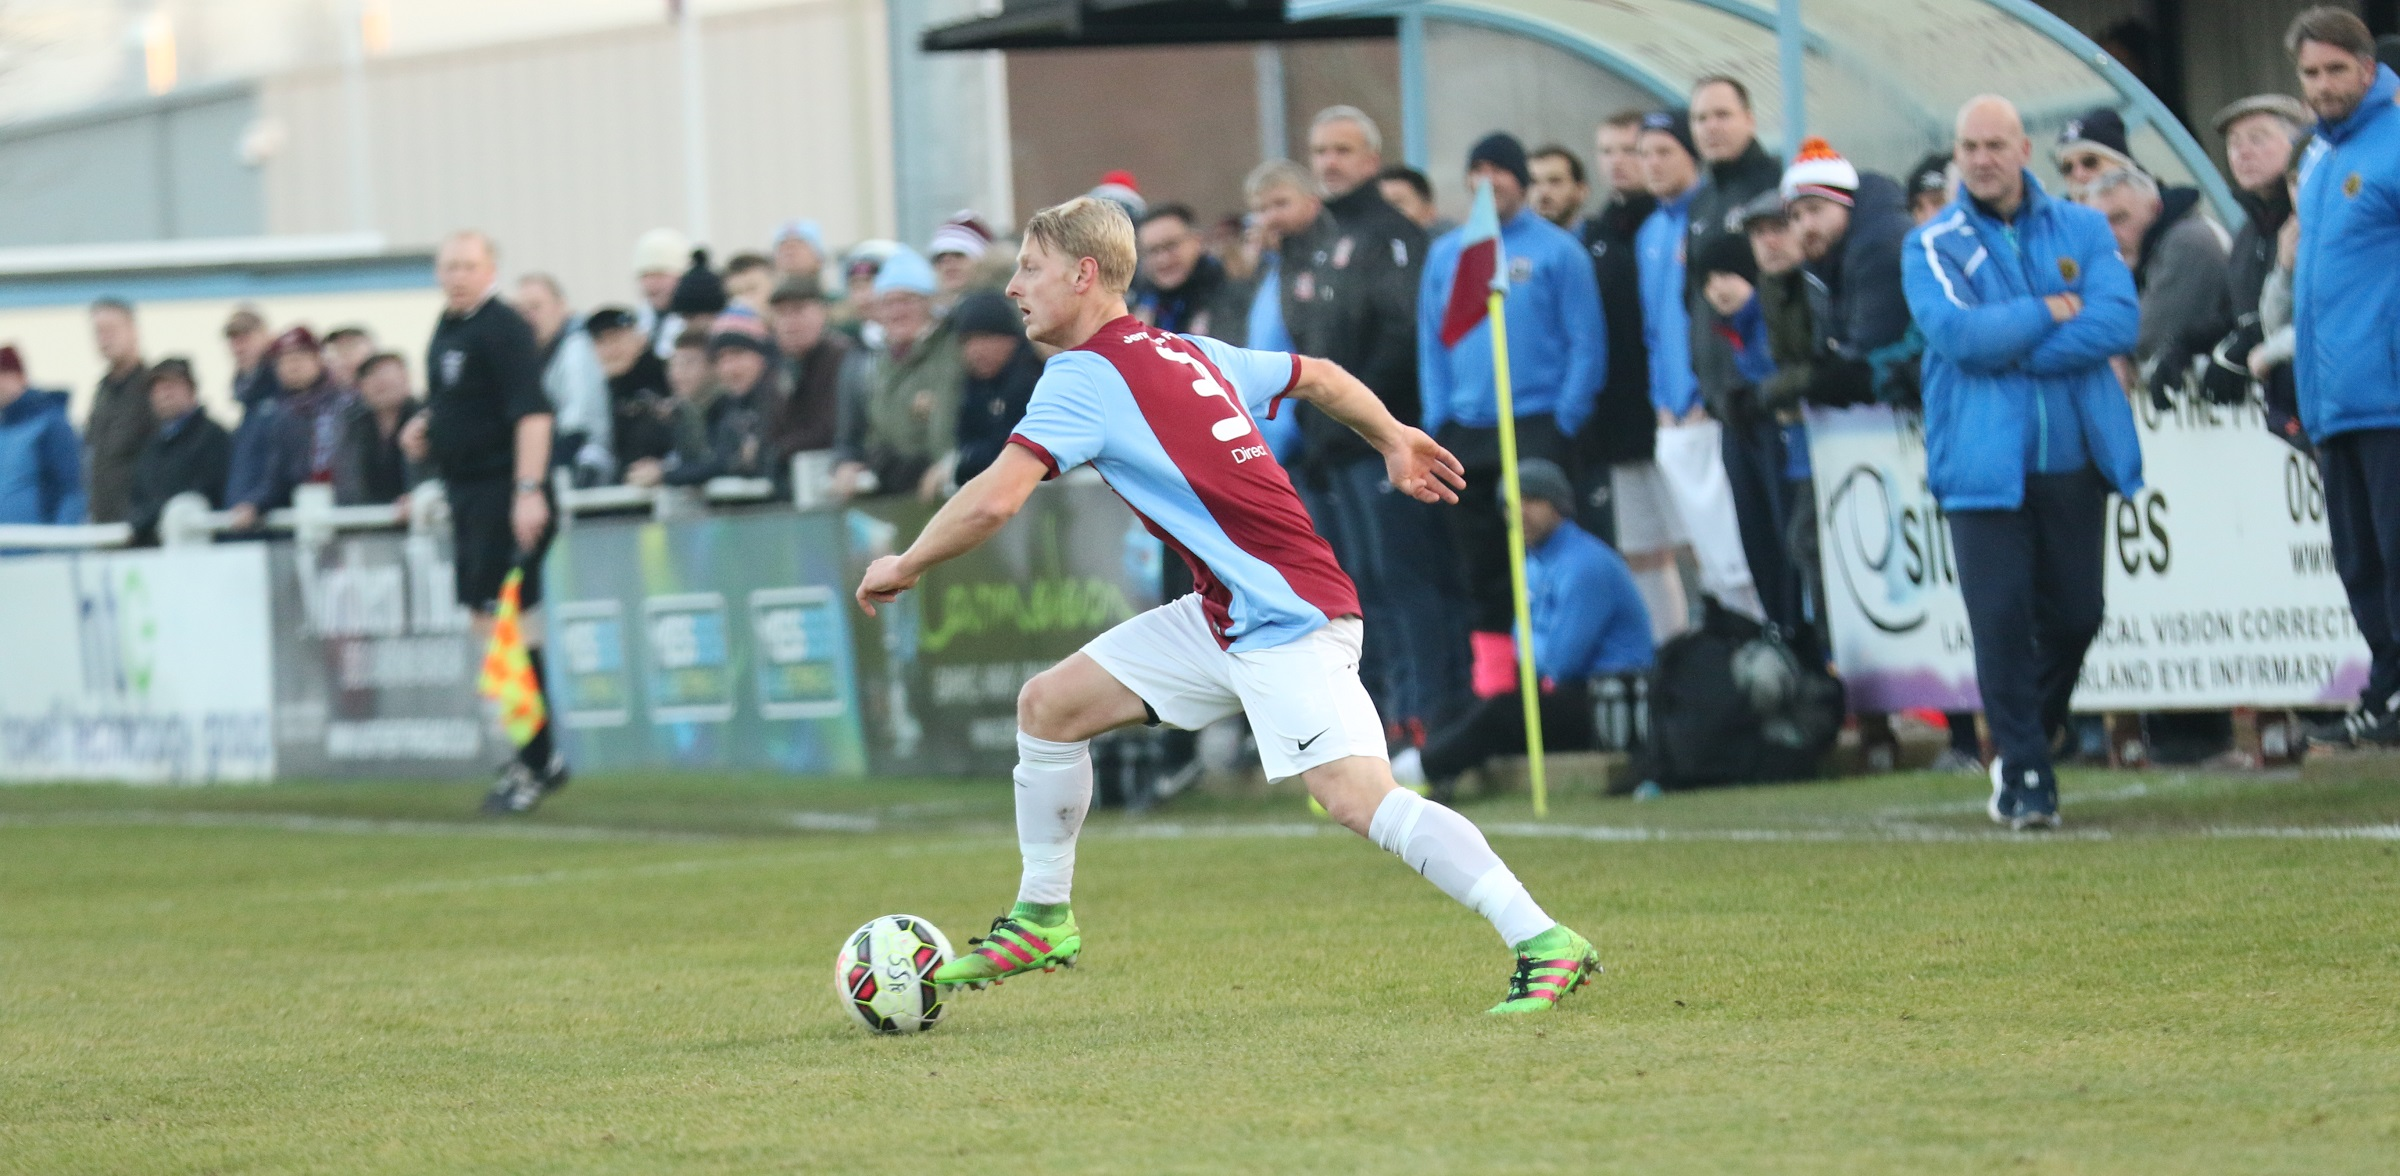 Danny Carson leaves South Shields